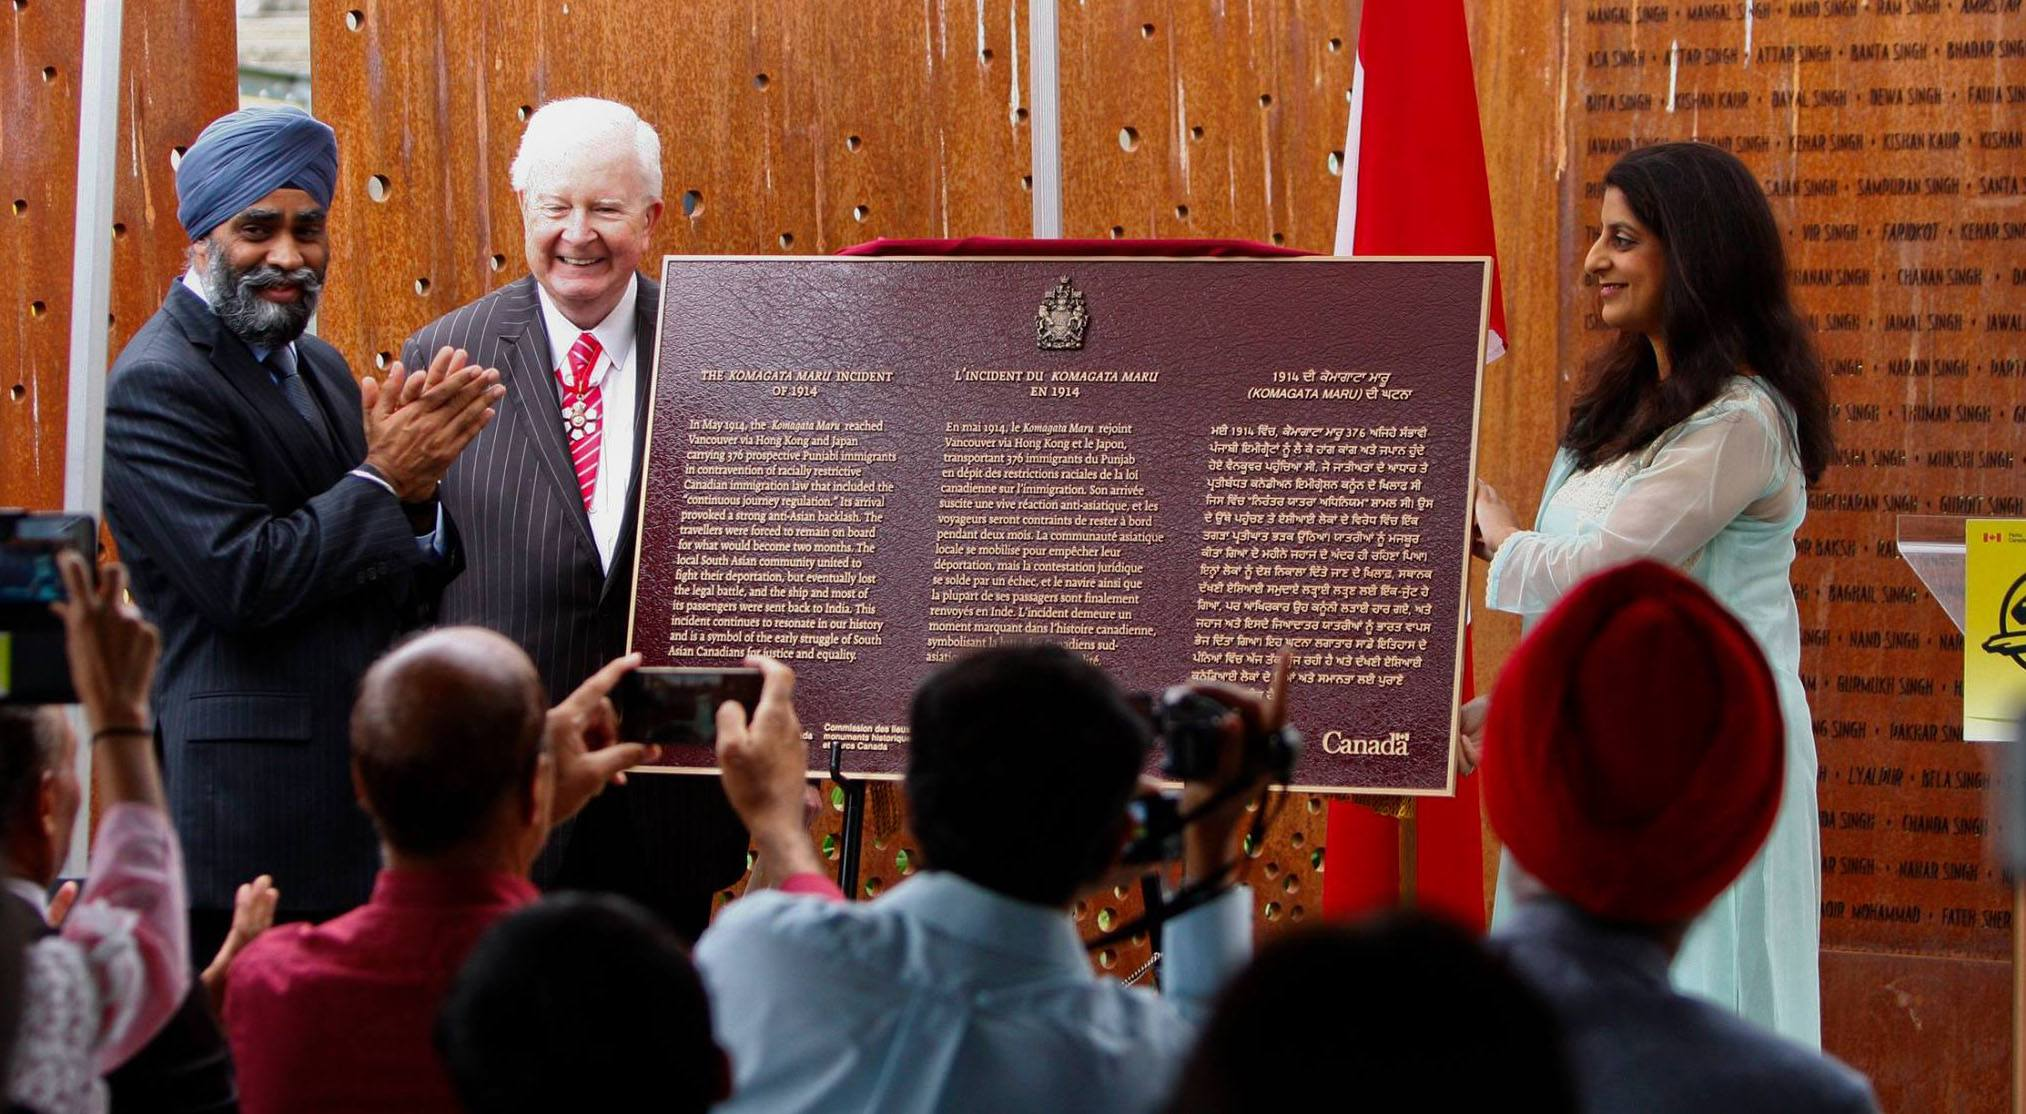 Komagata Maru incident gets new historic plaque in Vancouver